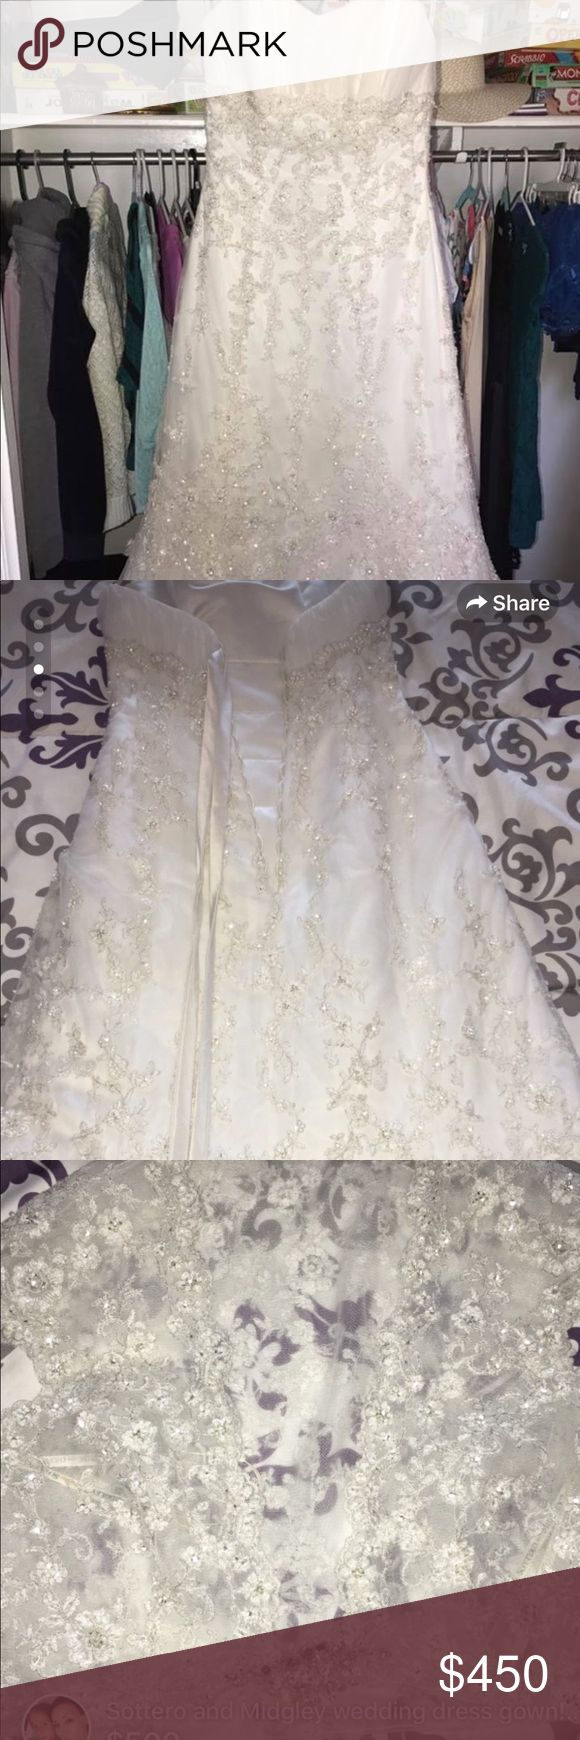 Sottero and Midgley never worn wedding gown size 8 Never worn and unaltered Sottero and Midgley wedding dress with beautiful beading and lace up back. Size 8. Strapless and comes with a a beaded cover up. Mermaid style fit. Make me an offer! Sottero and Midgley Dresses Wedding